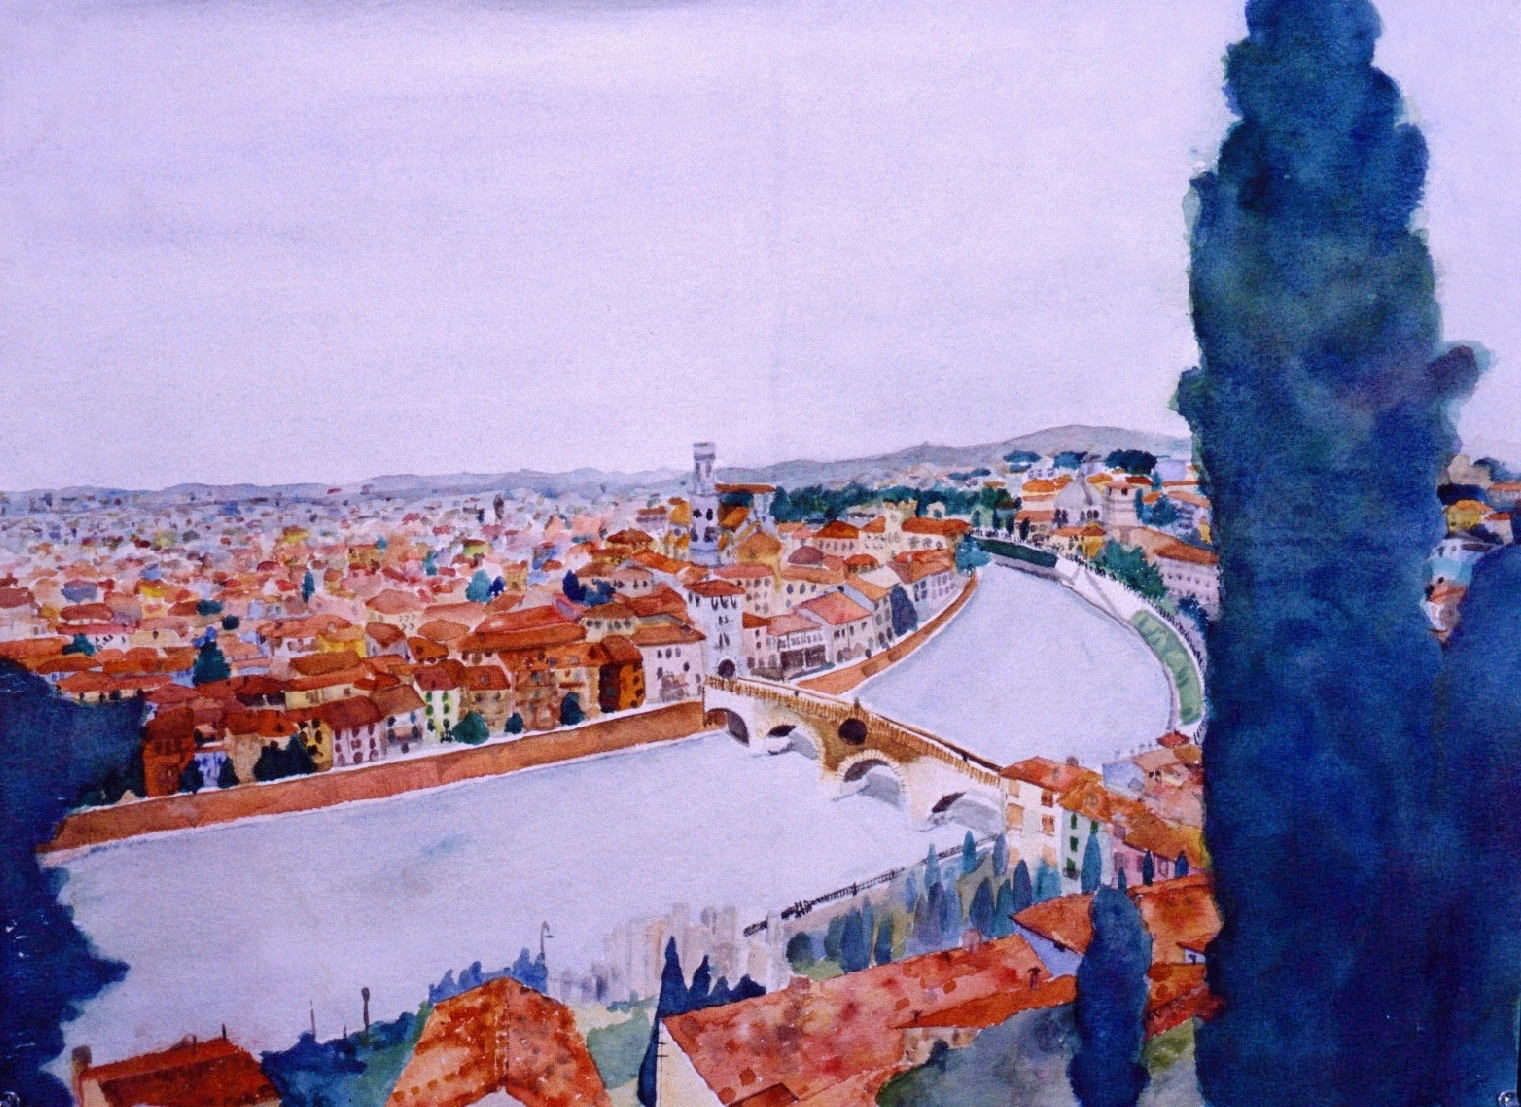 In 1984 I took on this ambitious watercolor of Verona, Italy where I grew up and where my family still lives now.